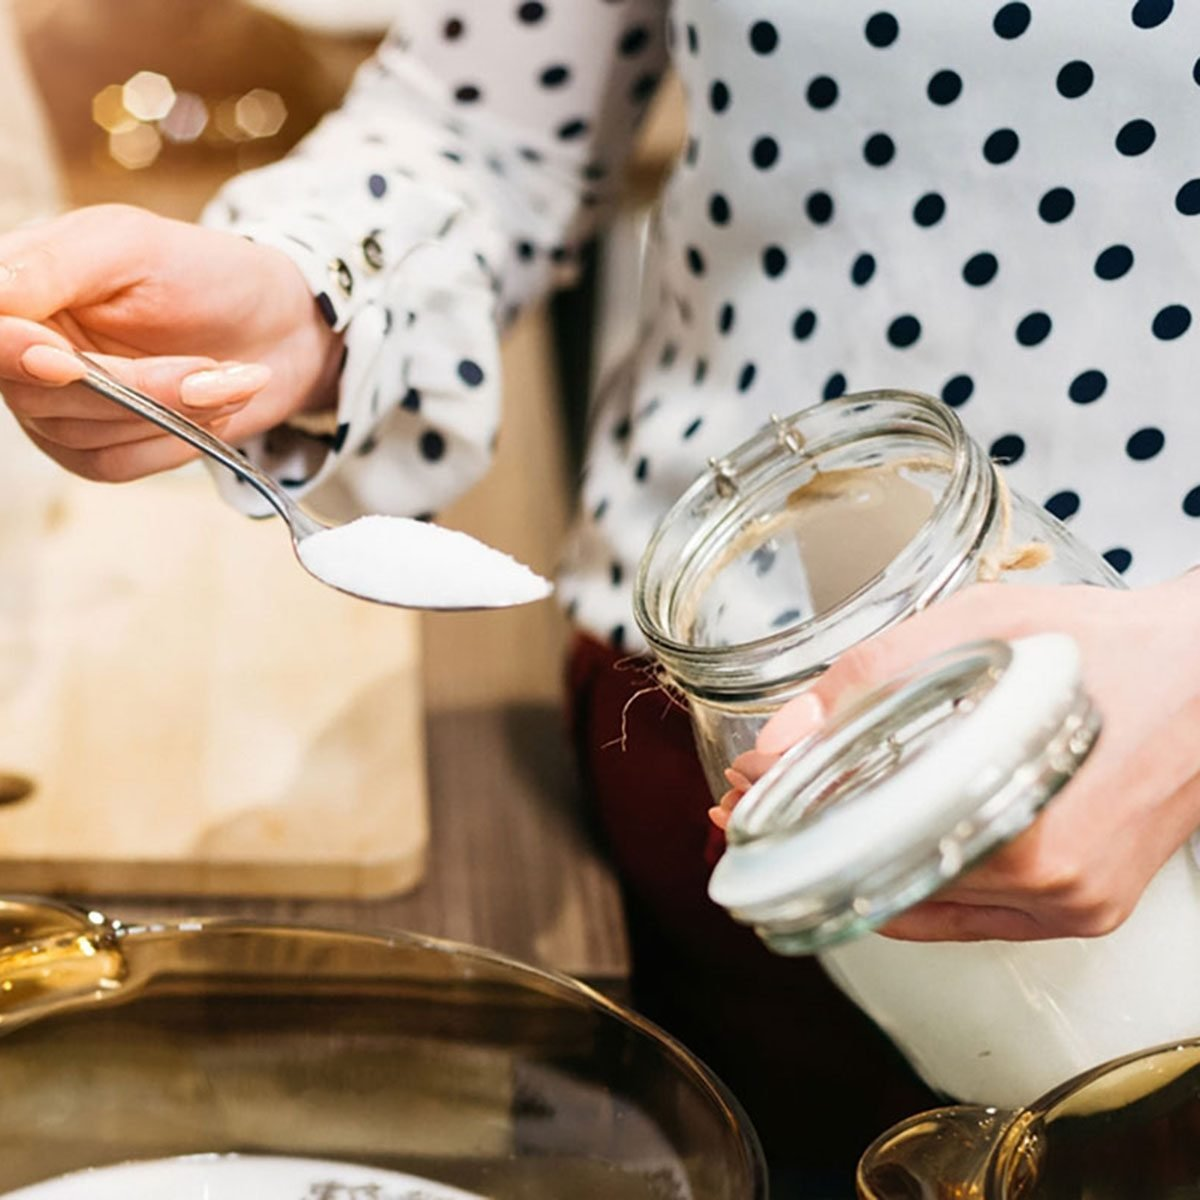 Woman cafe worker adding sugar to bowl with dessert ingredients.